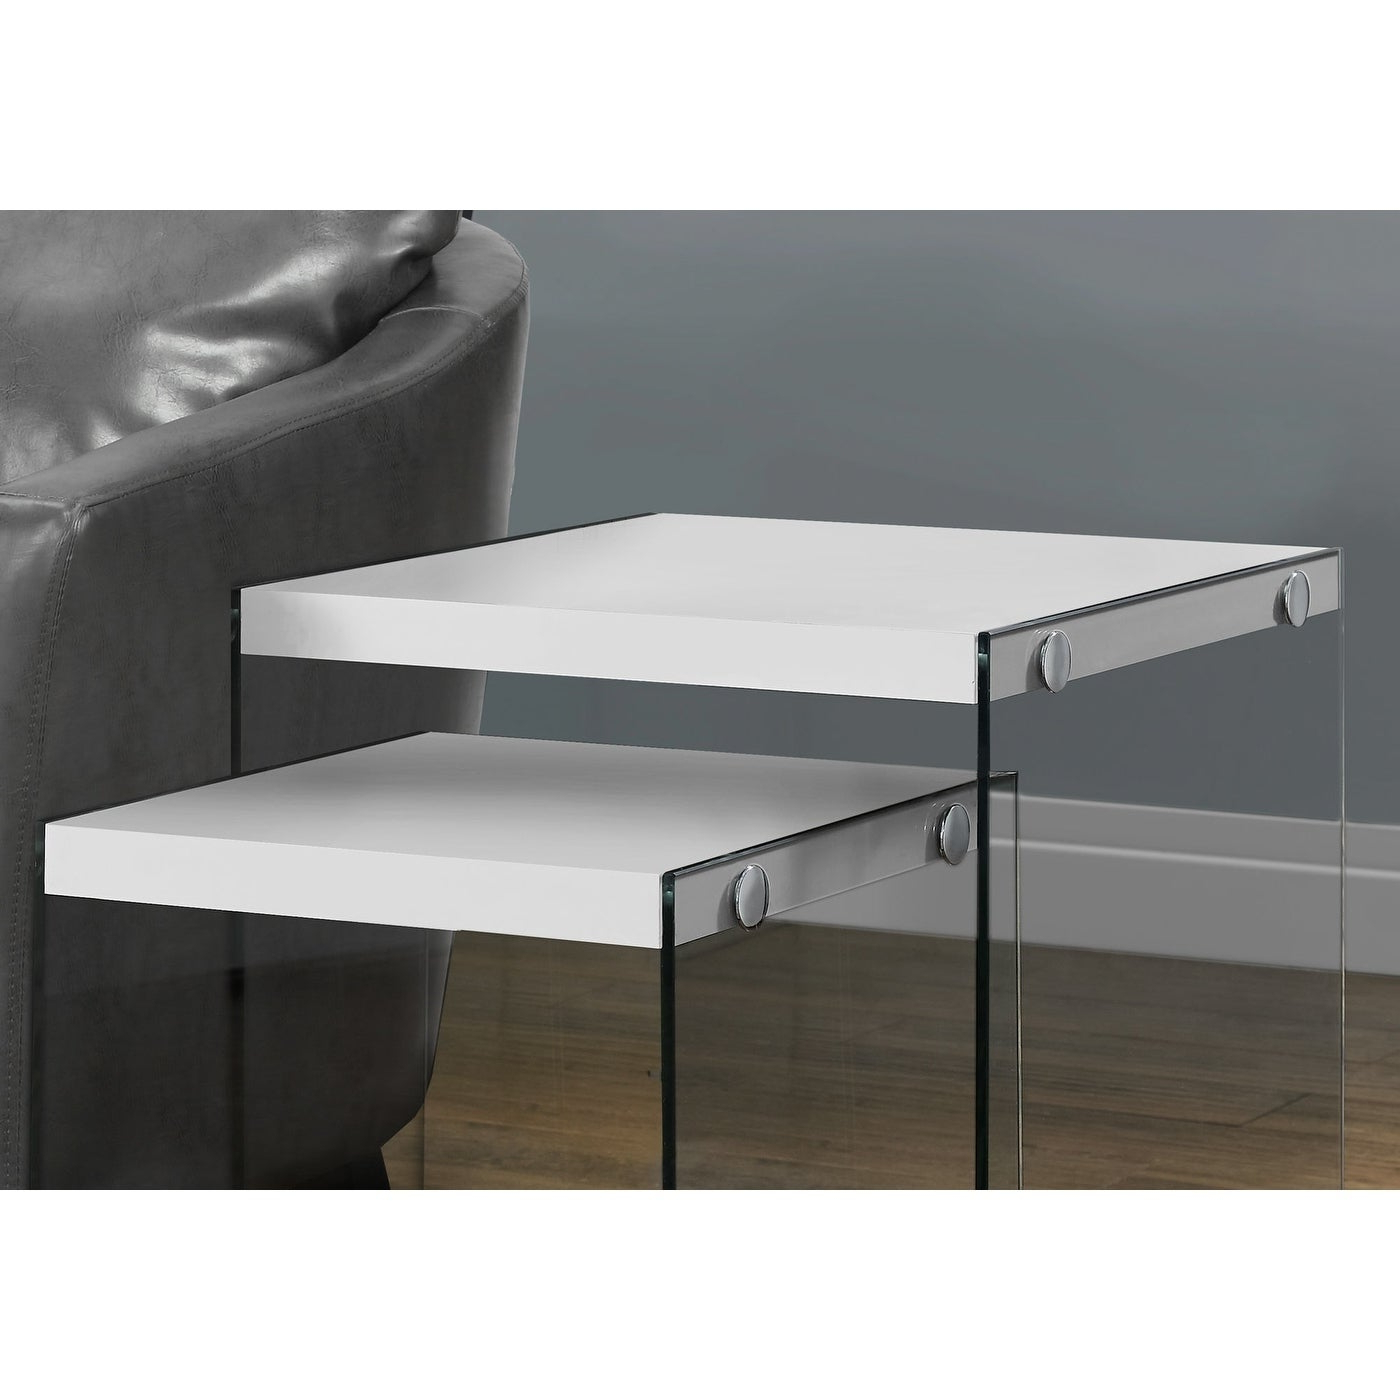 2020 Glossy White Hollow Core Tempered Glass Cocktail Tables In Glossy White Tempered Glass 2 Piece Nesting Table Set (Gallery 11 of 20)